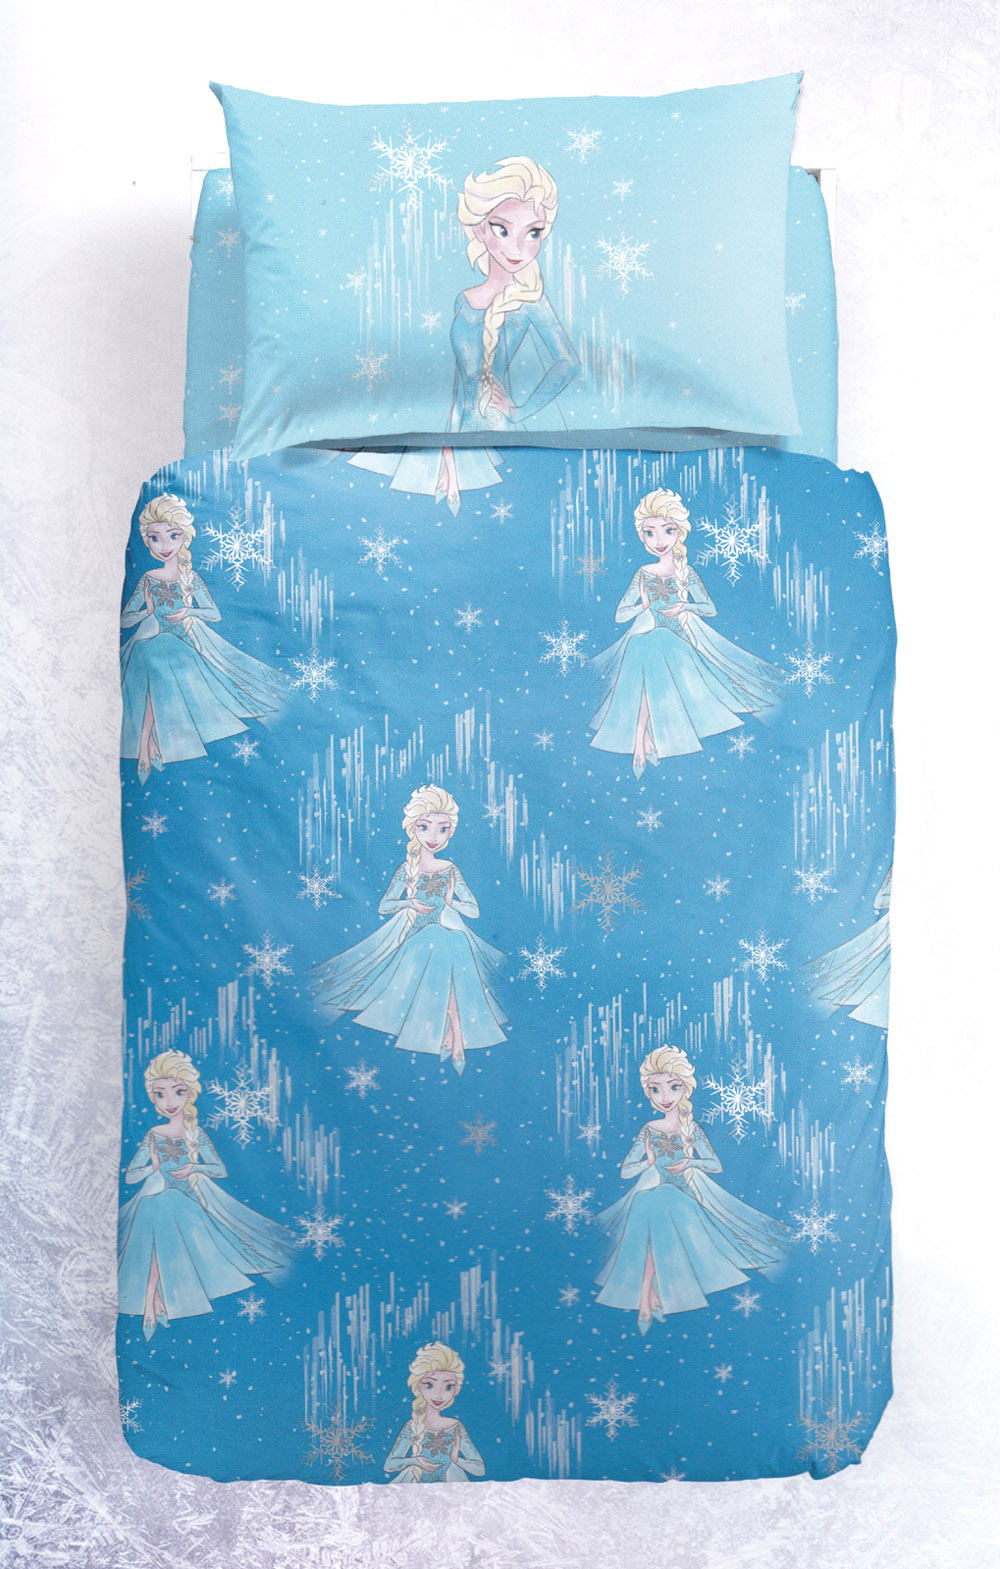 Copripiumino Elsa Frozen.Duvet Cover Set Bedding Princesses Frozen Elsa Snow Blue Disney